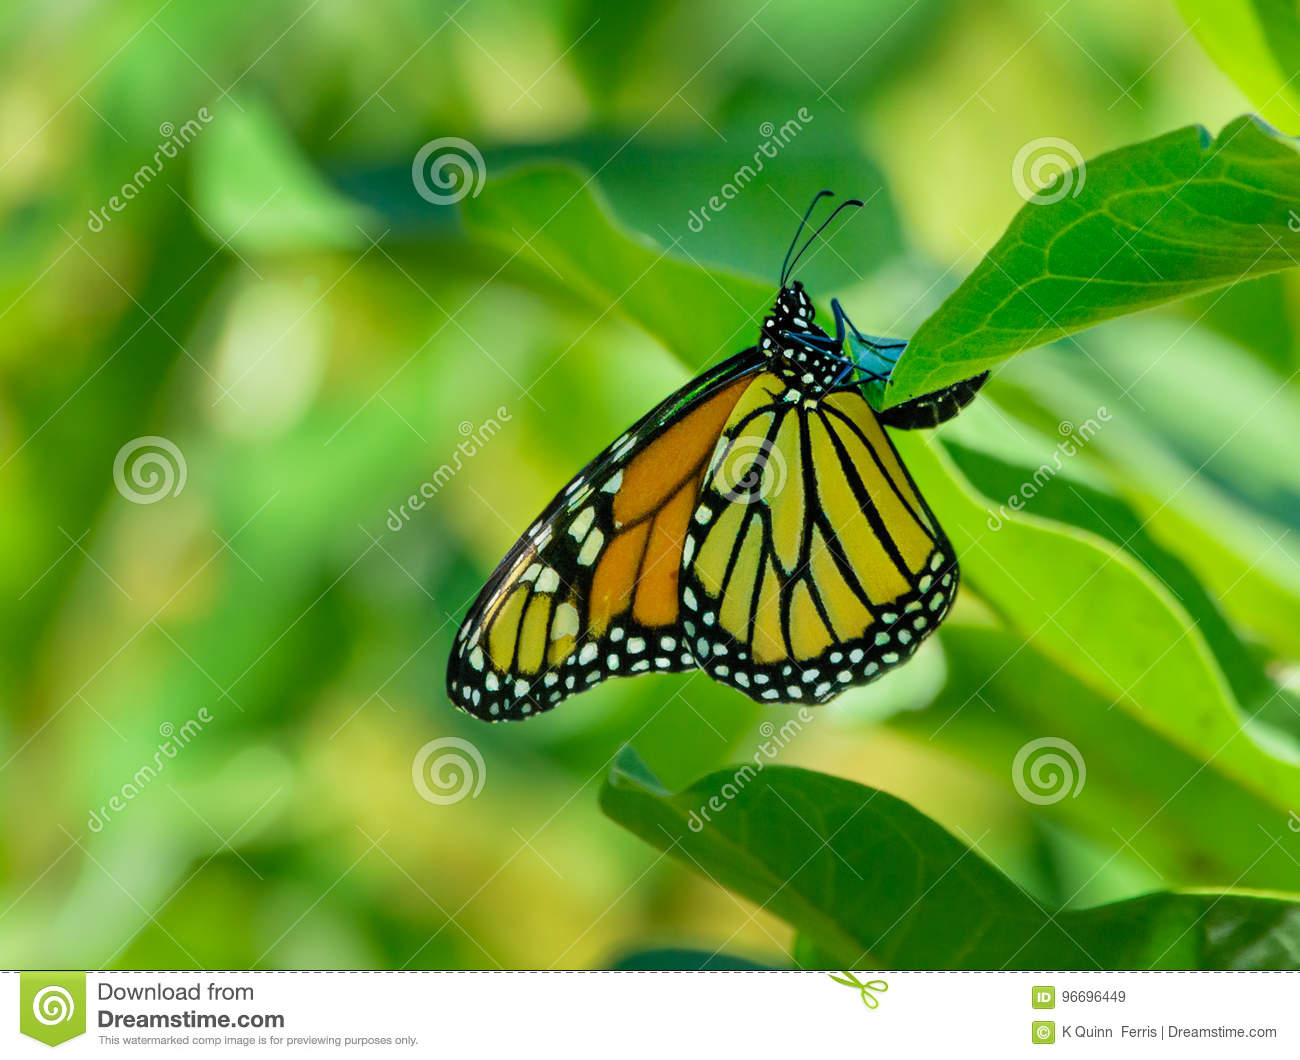 Monarch butterfly depositing and egg on milkweed leaf